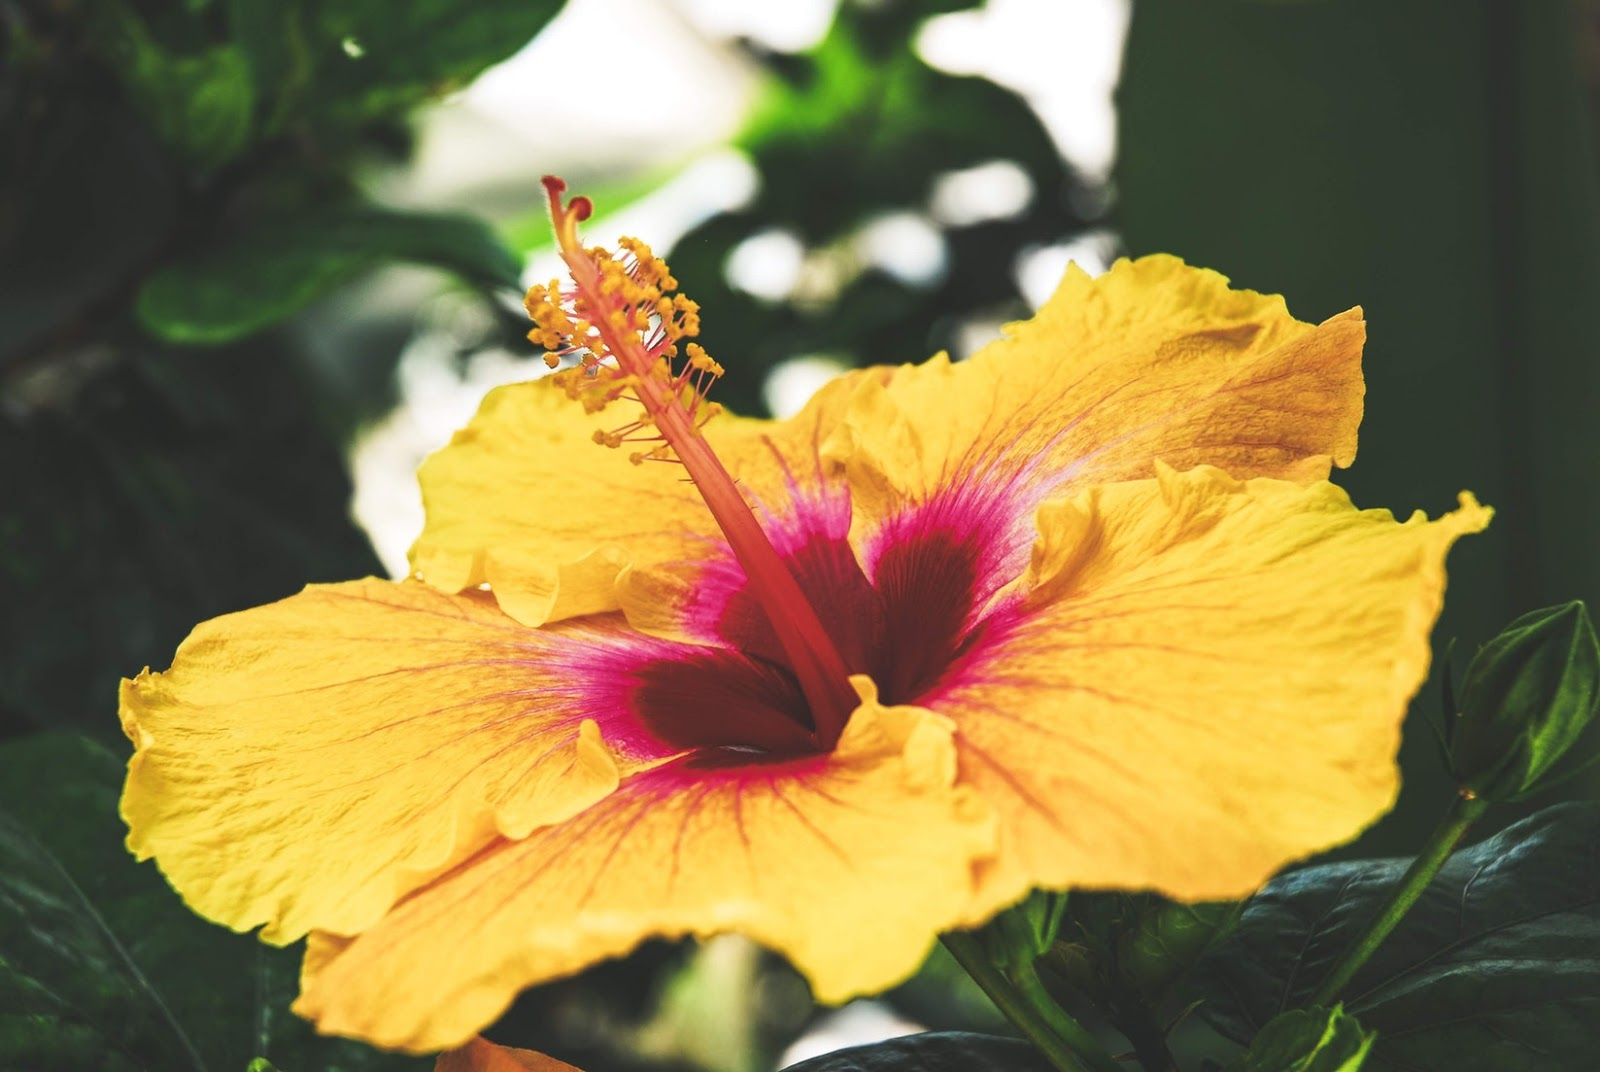 Hibiscus A Healthy Beverage From Flower To Cup Cup Leaf